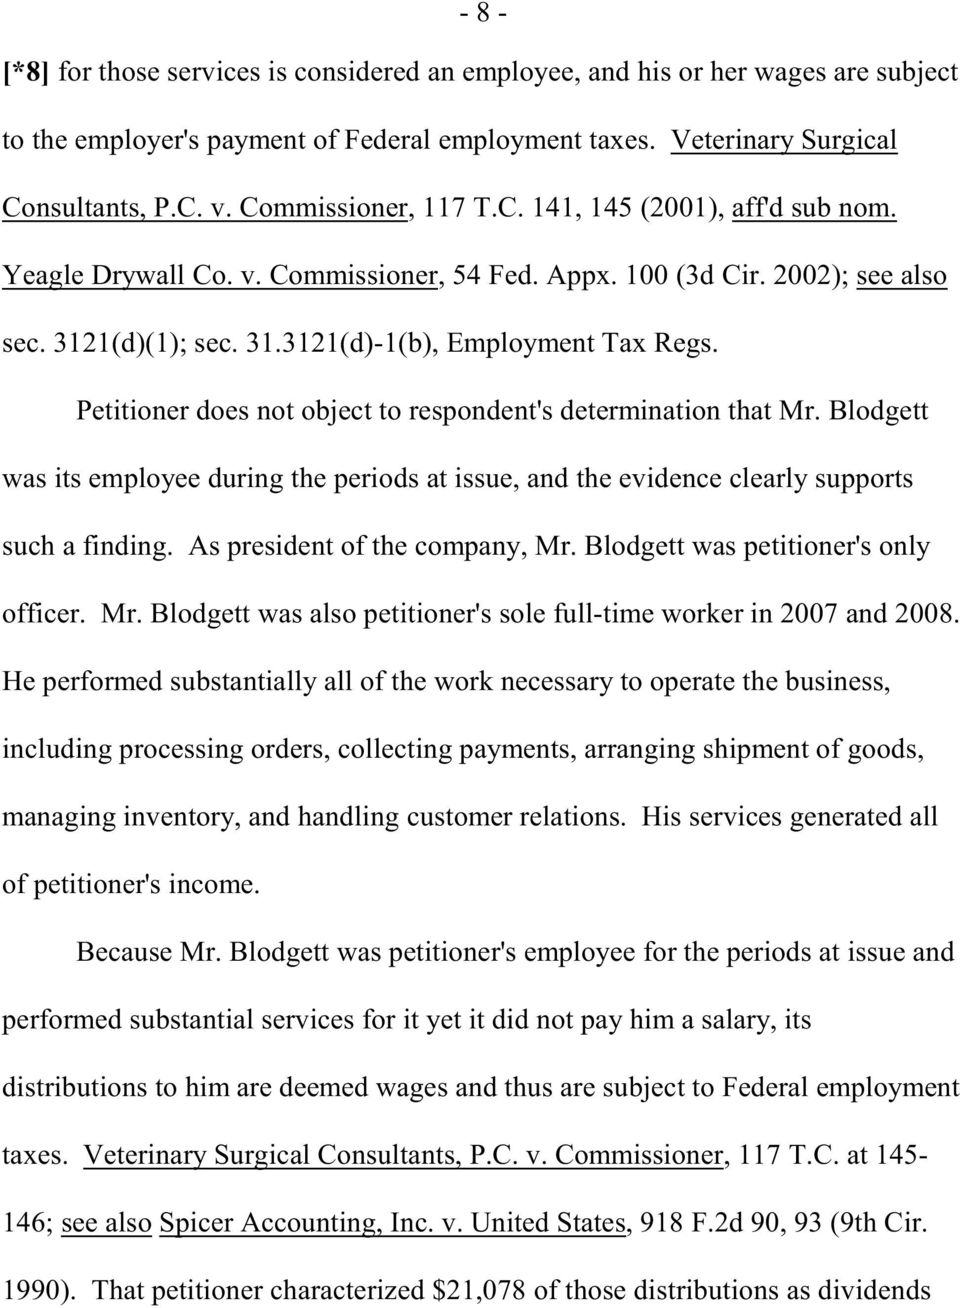 Petitioner does not object to respondent's determination that Mr. Blodgett was its employee during the periods at issue, and the evidence clearly supports such a finding.